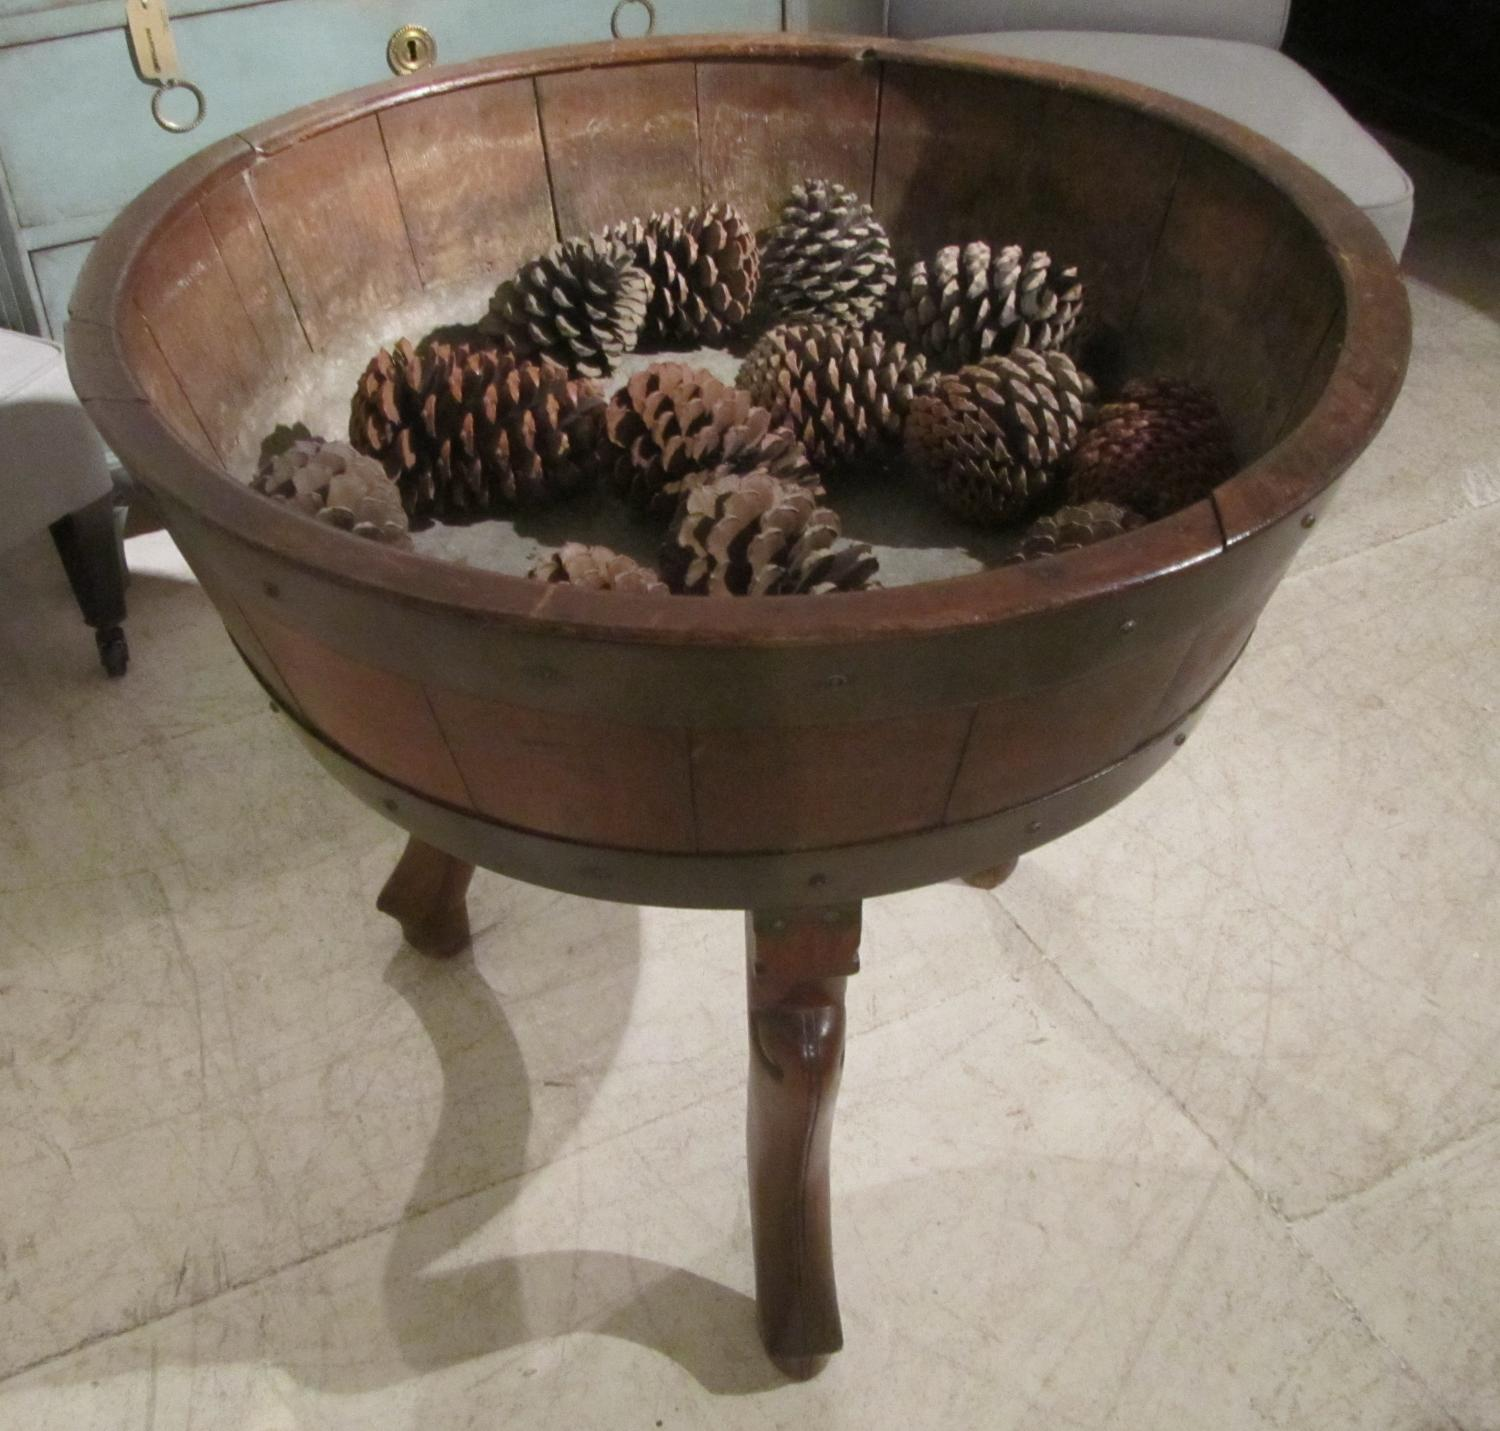 An 18thC wine cooler